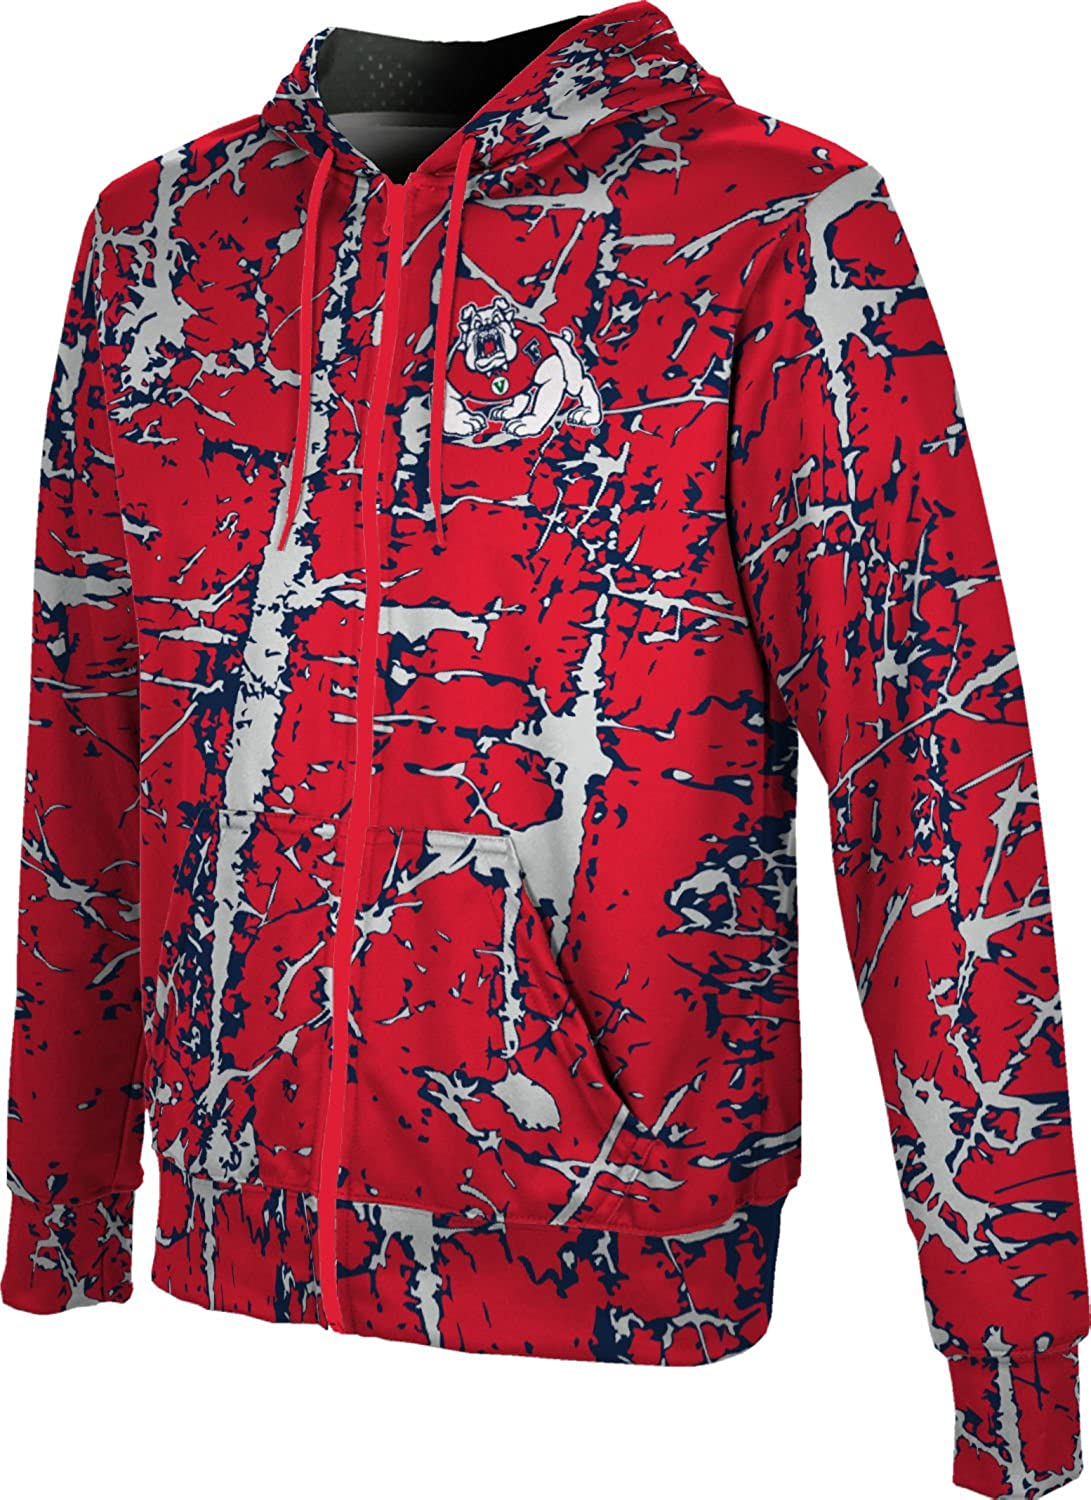 ProSphere Fresno Max 57% OFF State University Boys' Today's only Hoodie Zipper School Sp